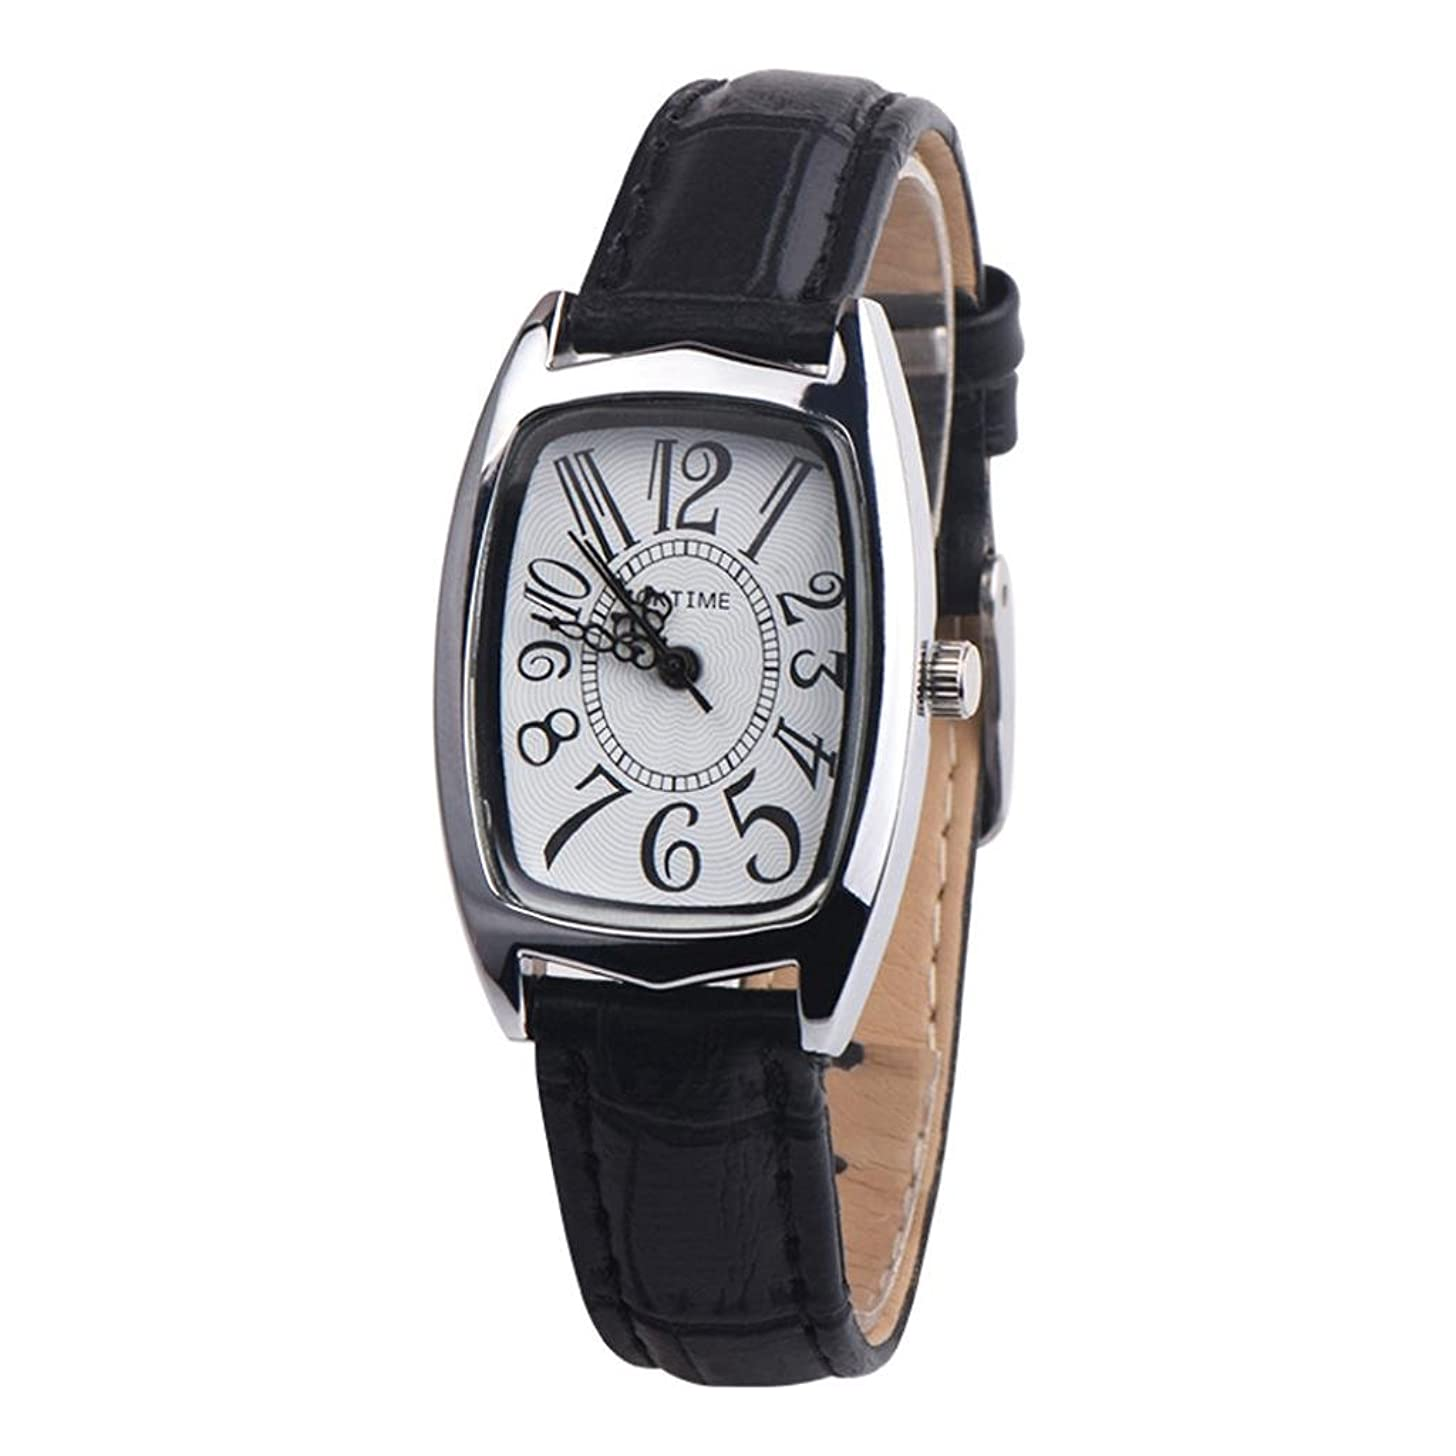 Swyss Women Square Ladies Watch Casual Leather Band Quartz Analog WristWatches Chic Charm Accessories NEW HOT FASHION (Black)